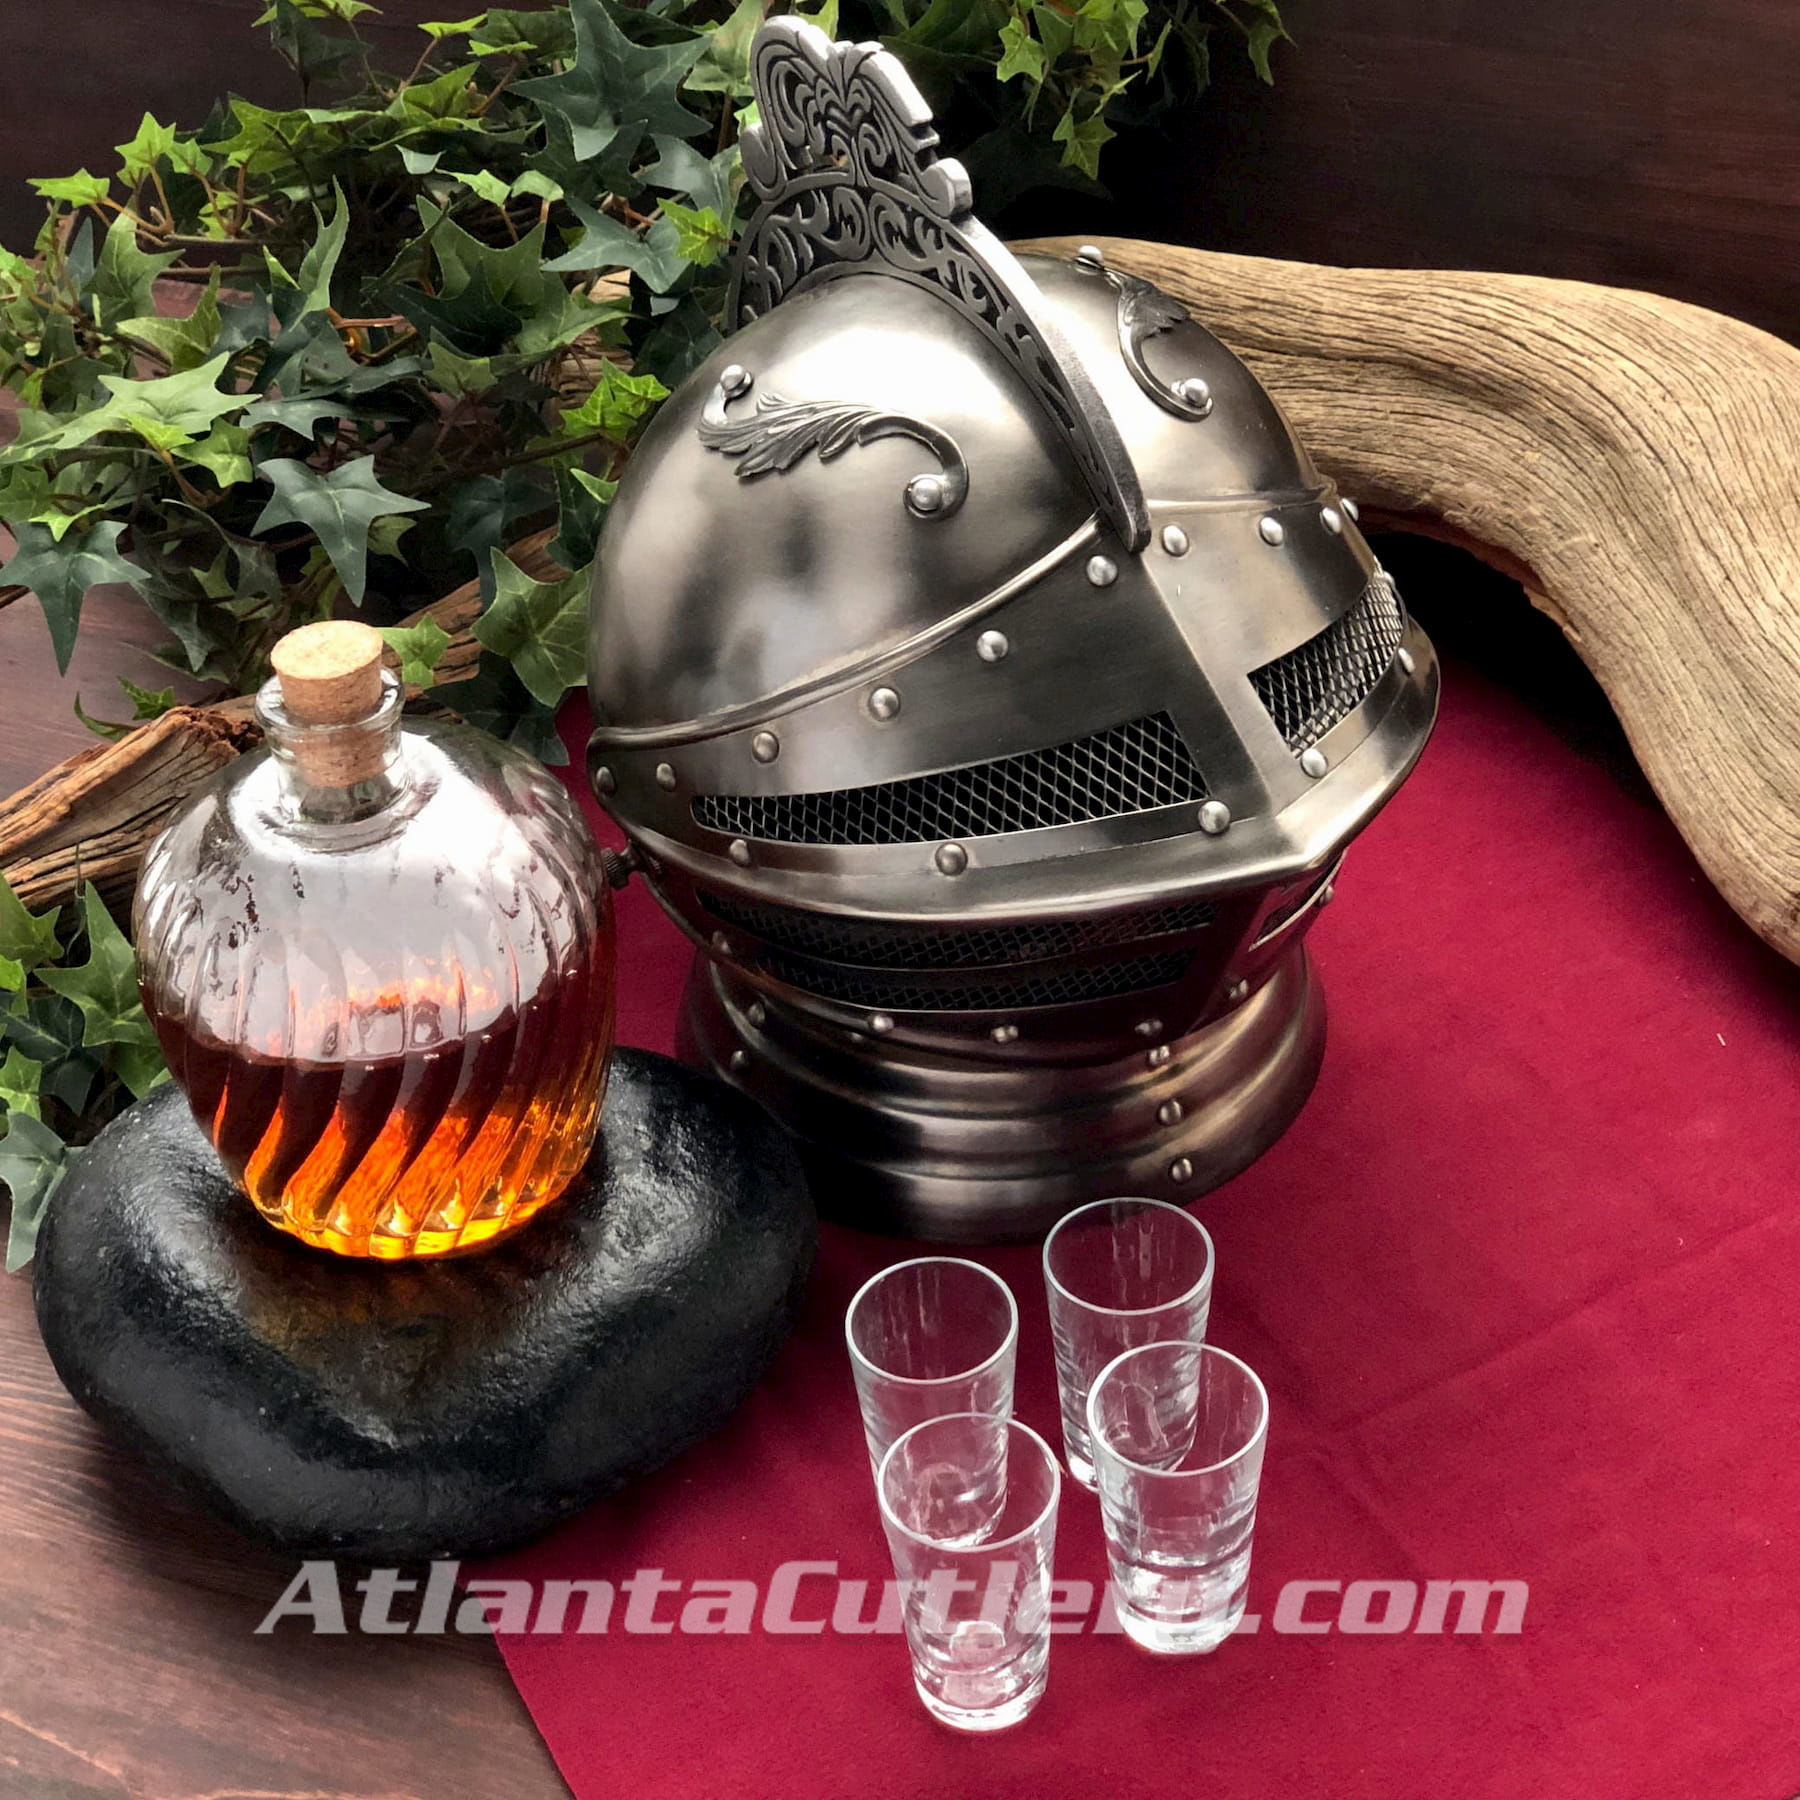 Closed Visor Medieval Helmet Drinking Caddy with Decanter Set